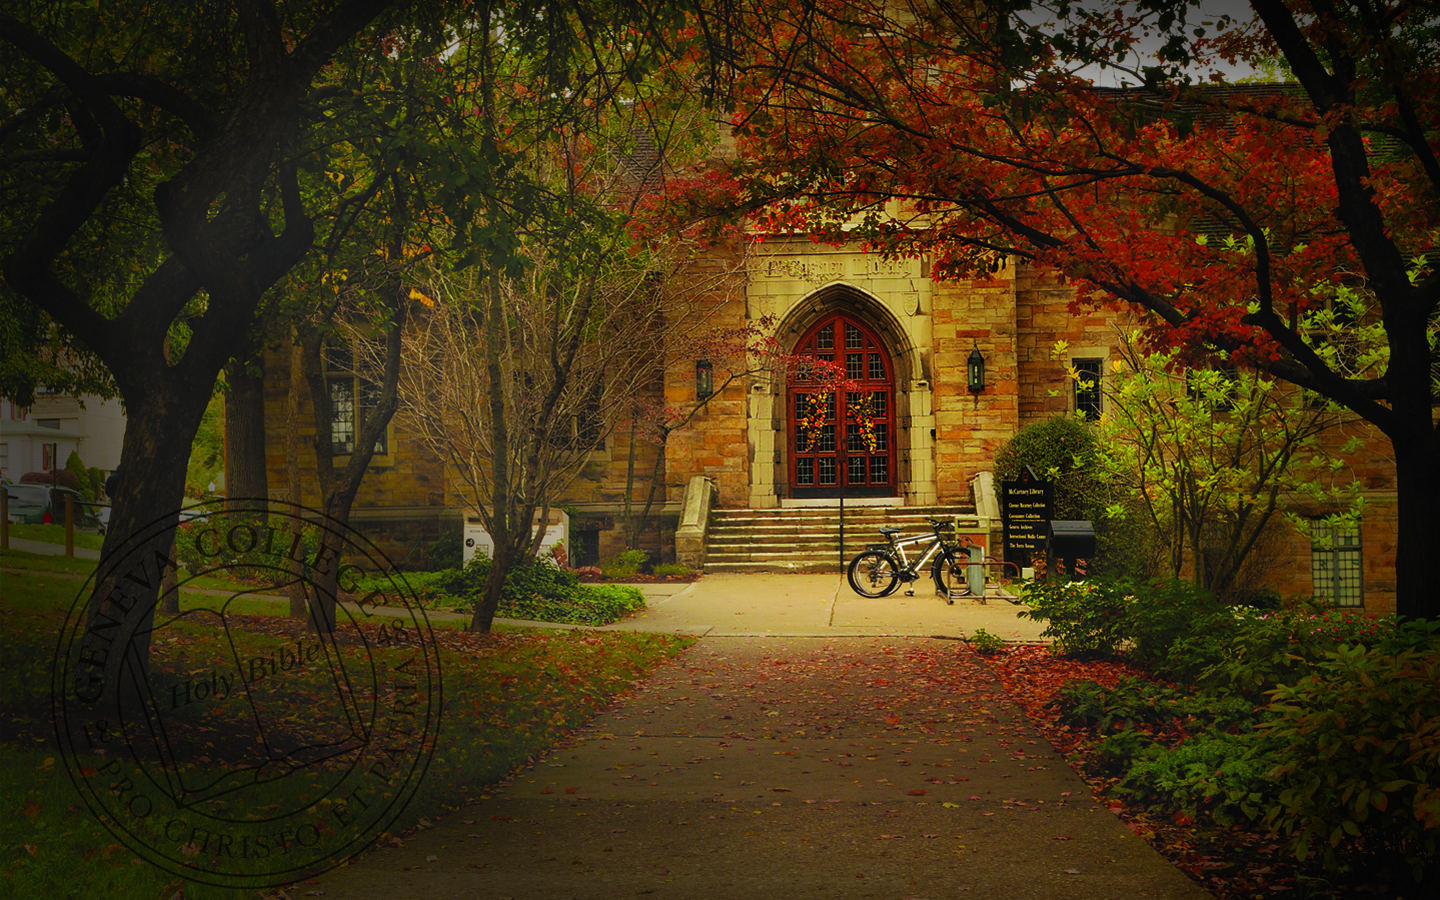 Fall Wallpaper 1920x1080 Desktop Backgrounds Geneva College A Christian College